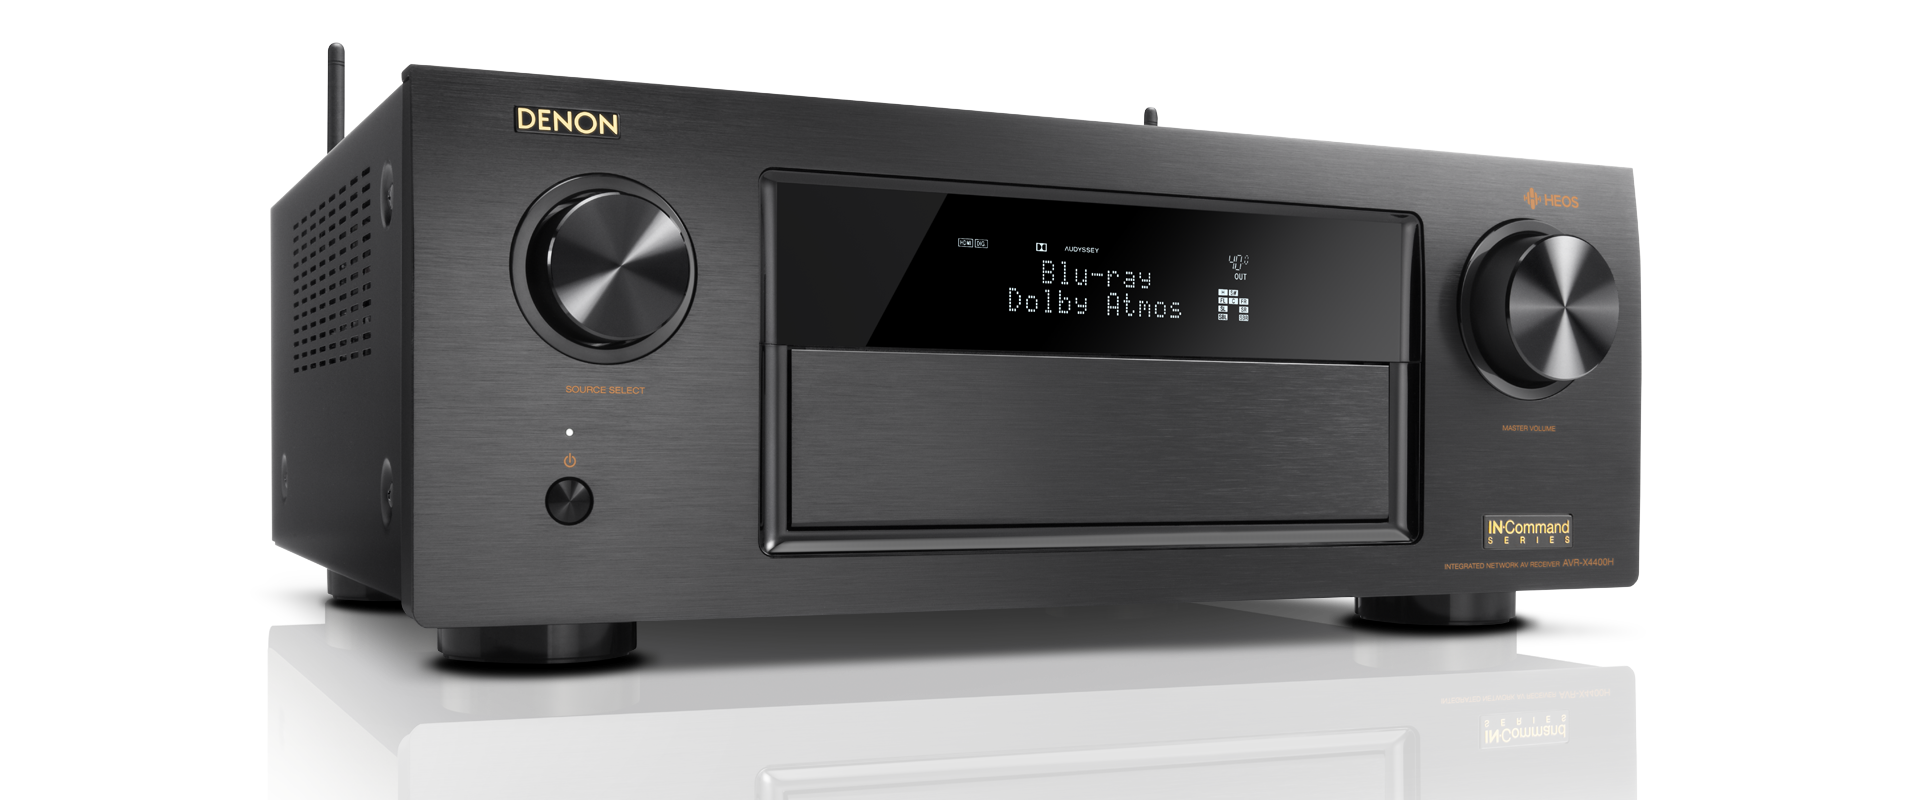 Denon AVR-X4400H Premium 9 2 channel AV Surround Receiver w